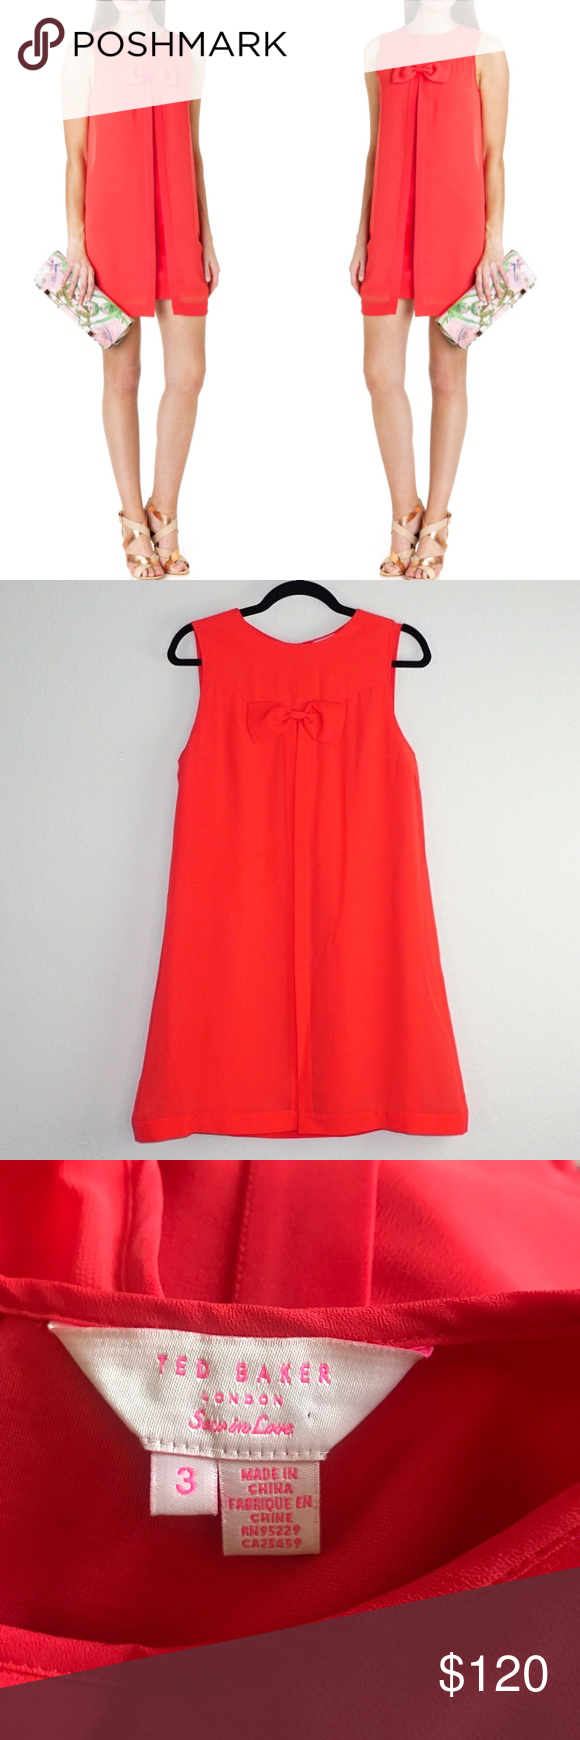 b1c956e5a1 Ted Baker Josa Bow Detail Swing Dress Perfect for the modern mod